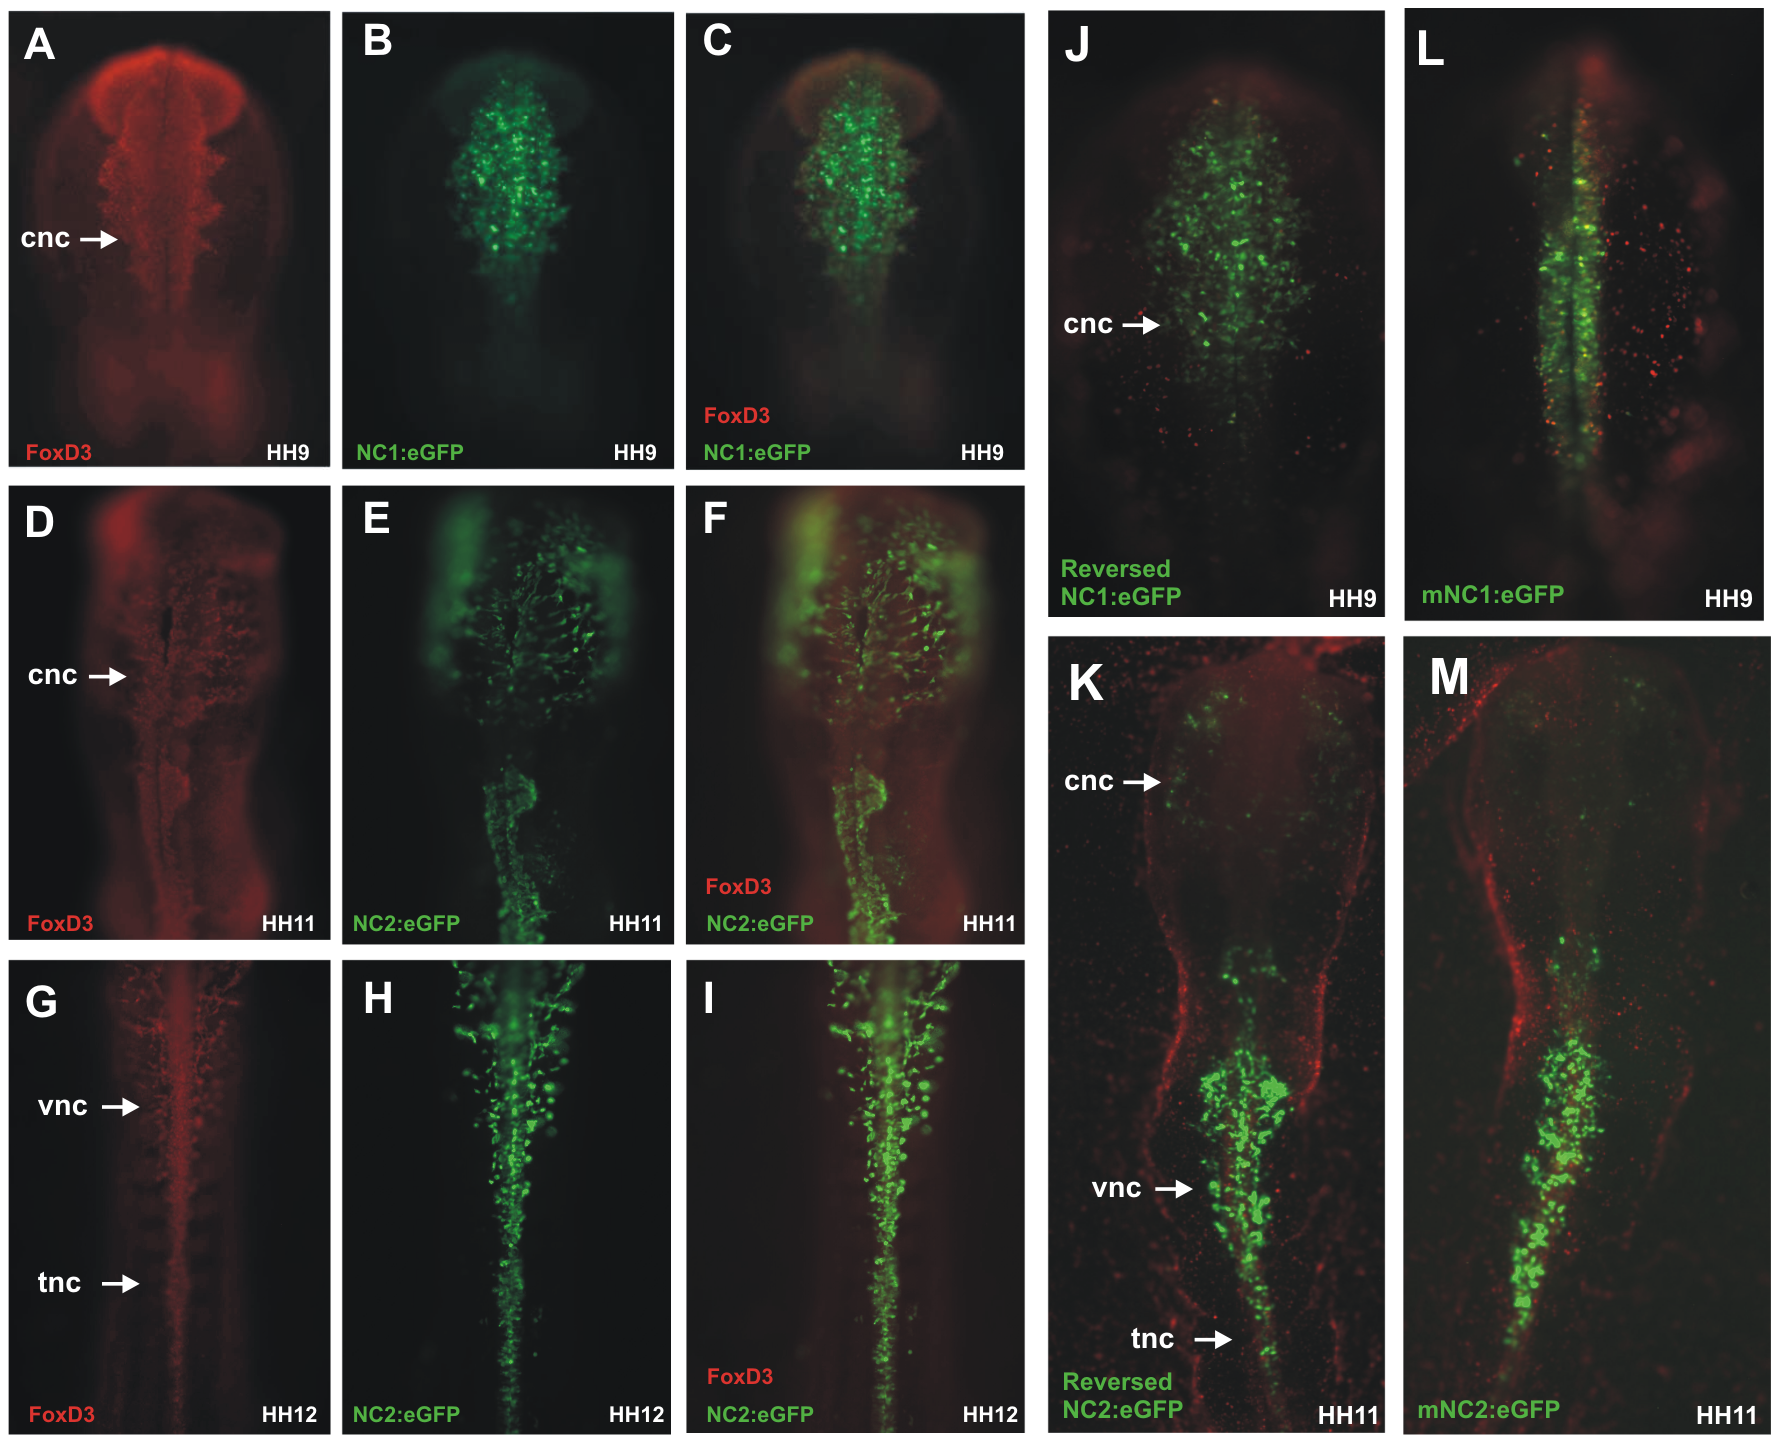 Chick NC1 and NC2 enhancers drive expression that overlaps with endogenous FoxD3 expression, function in reverse orientation, and are conserved with mouse NC1 and NC2.